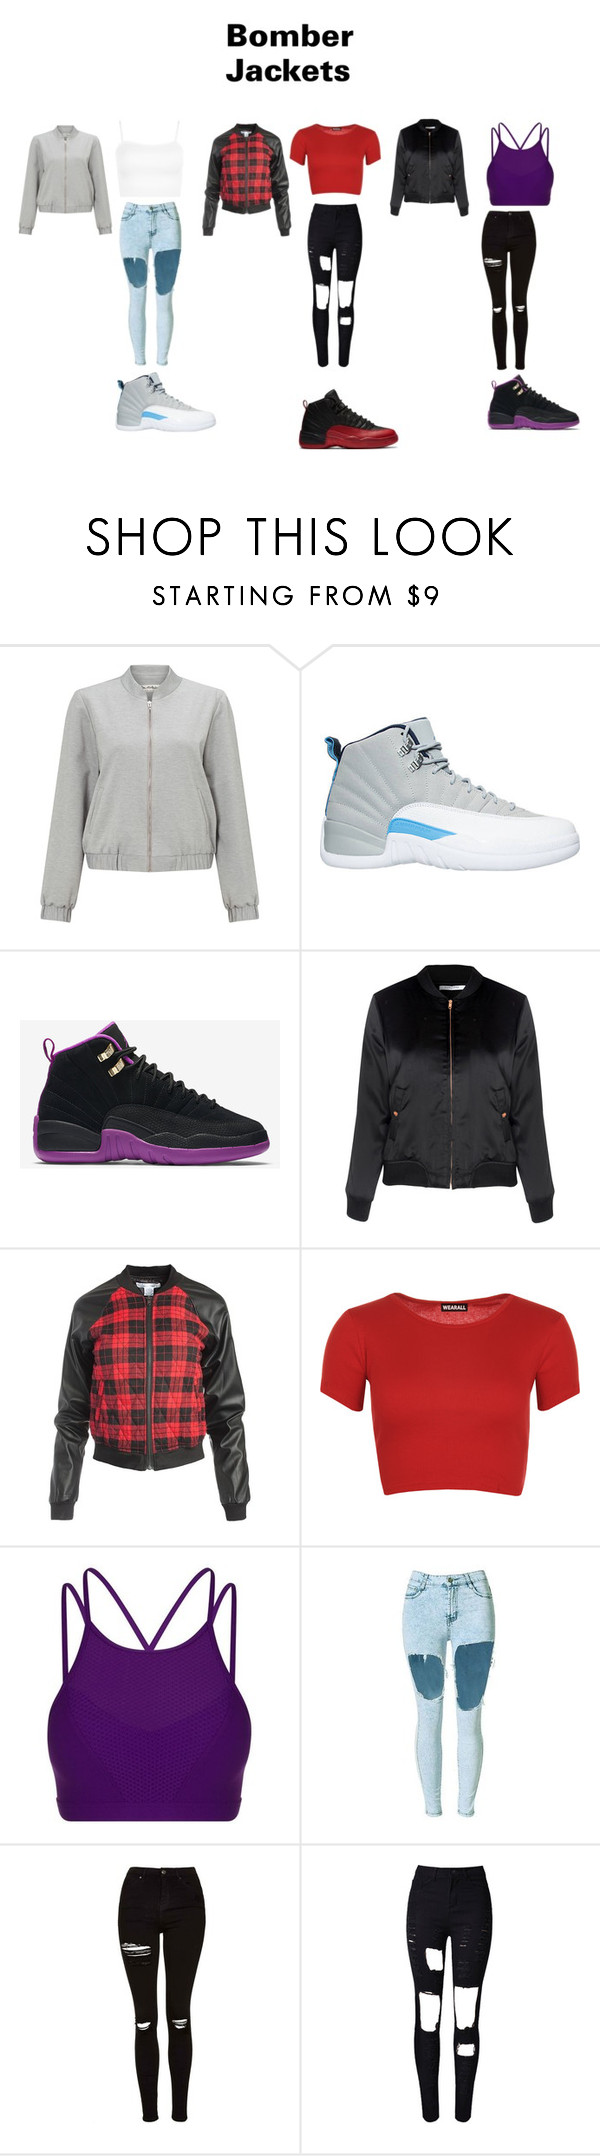 """""""Bomber jackets"""" by arie-boi on Polyvore featuring Miss Selfridge, NIKE, Glamorous, Sans Souci, WearAll, Lorna Jane, Topshop, WithChic and bomberjackets"""